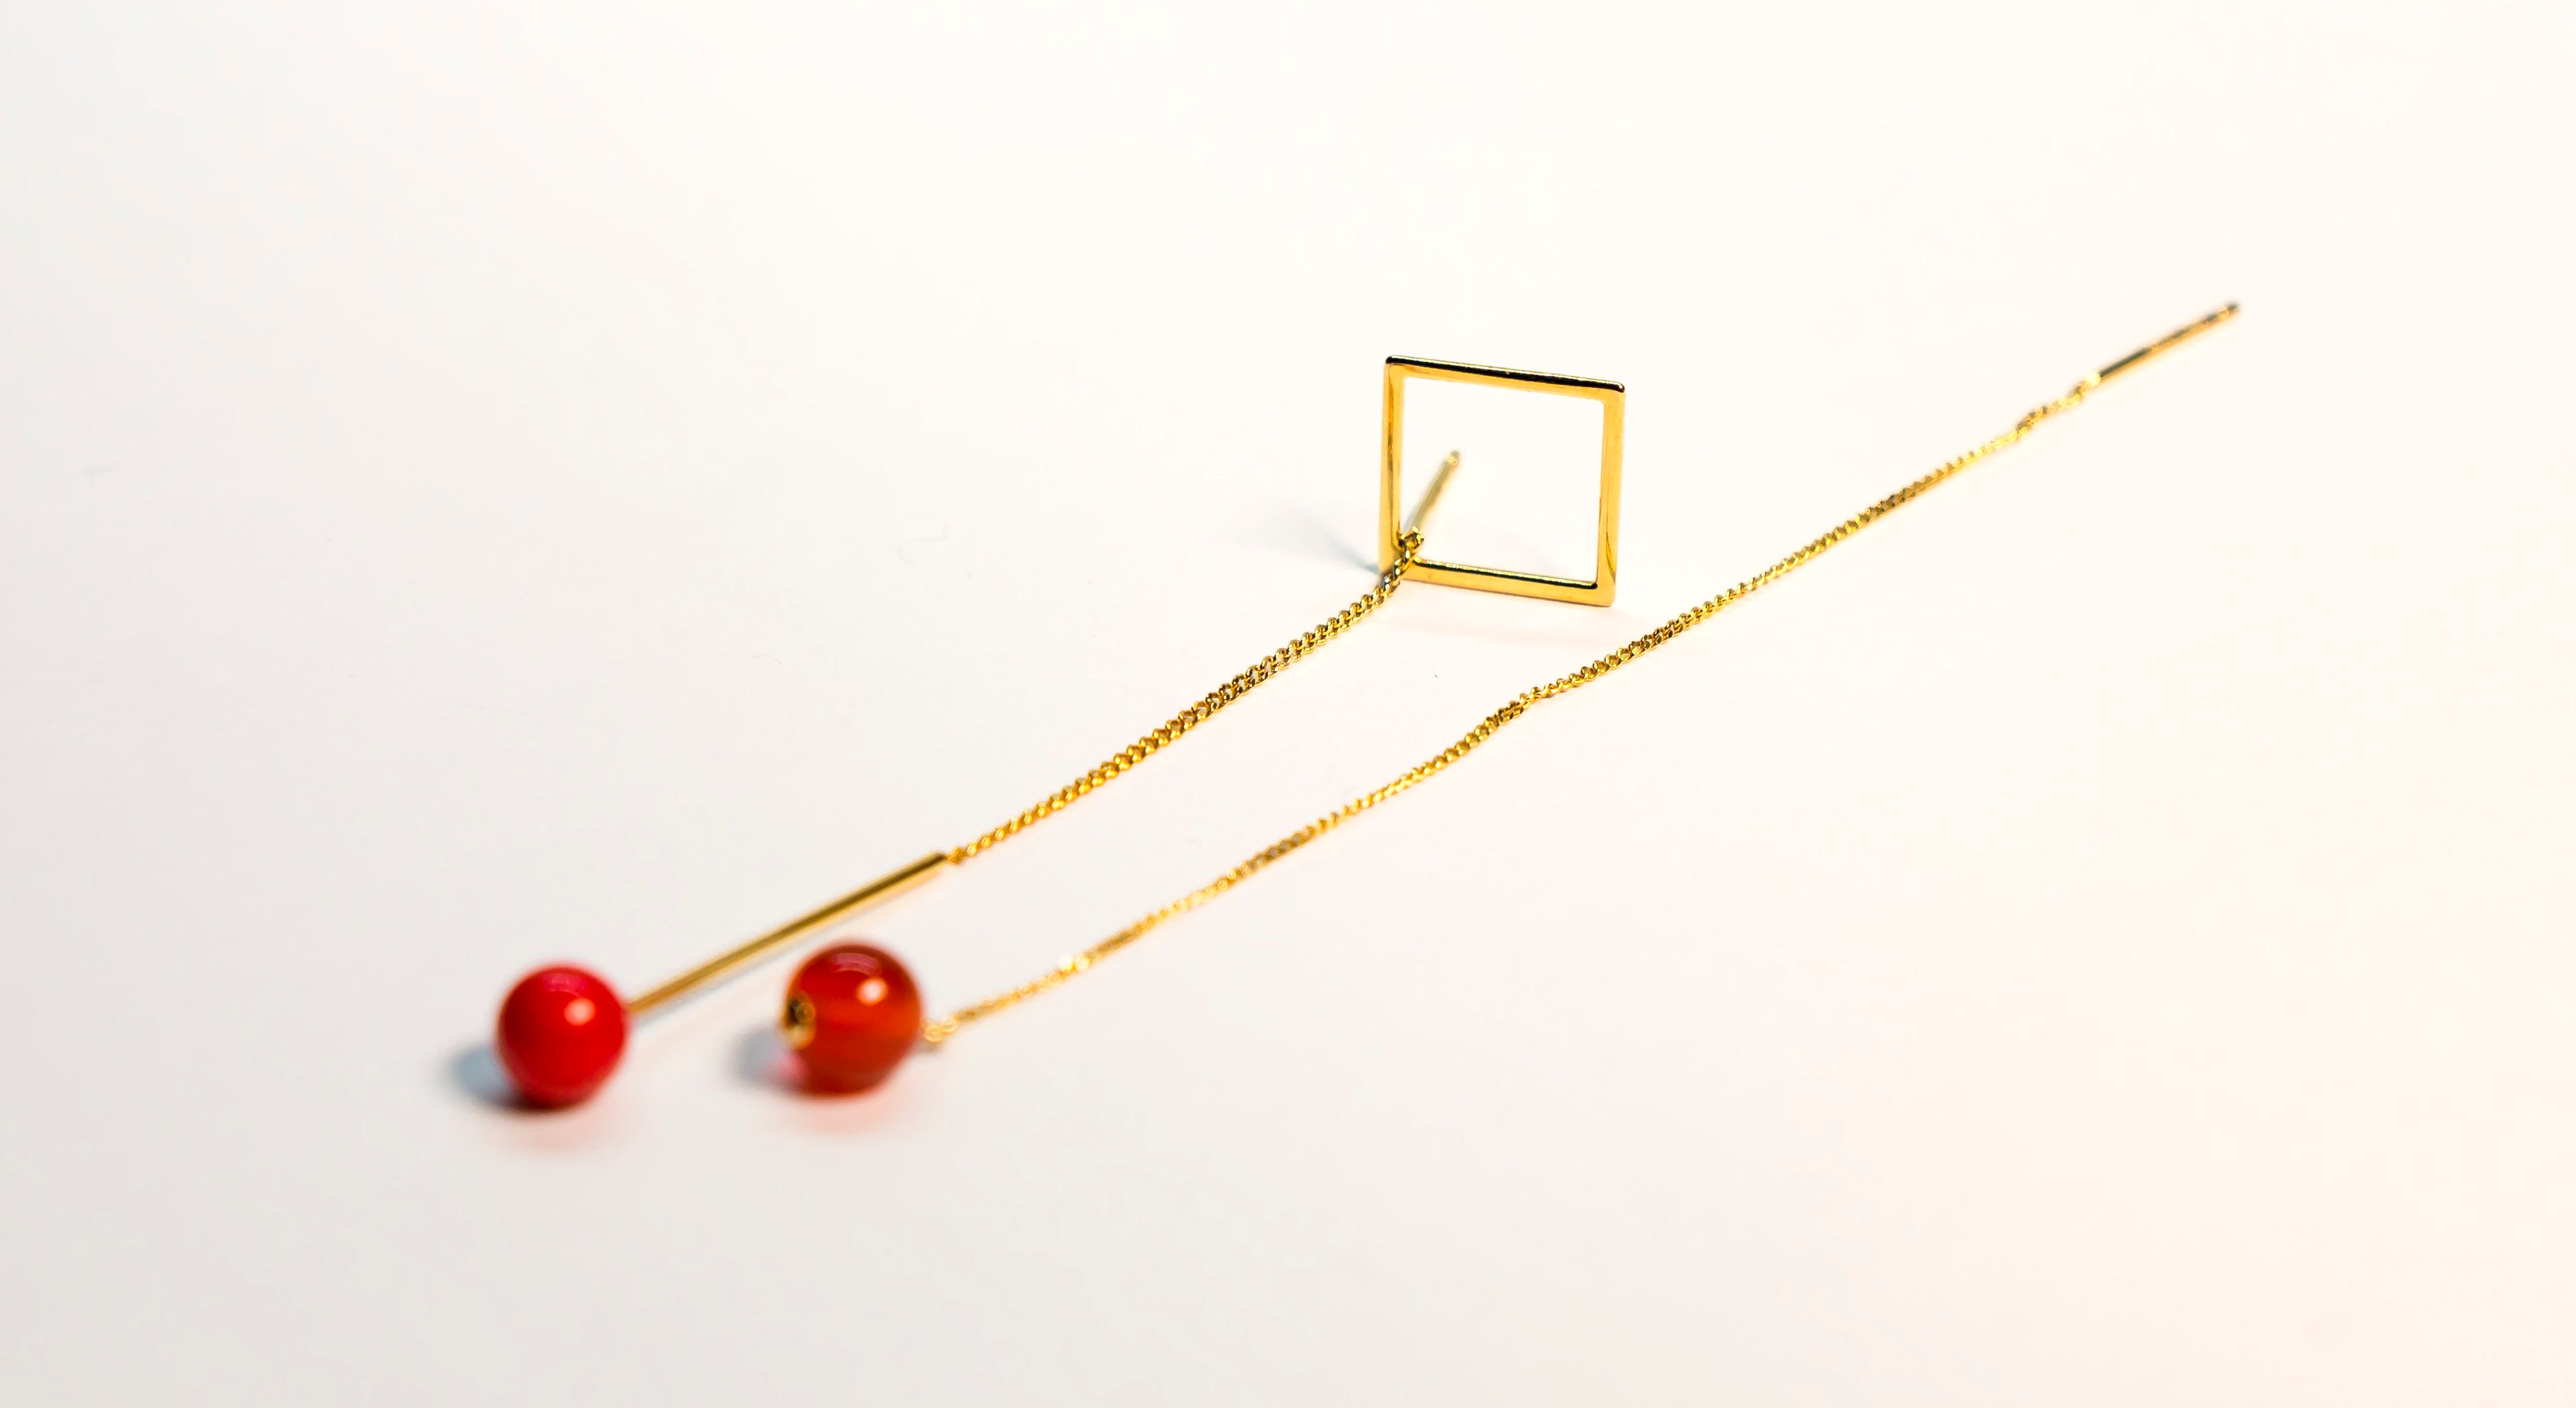 The Glared Cherry Kissed Squared Earrings